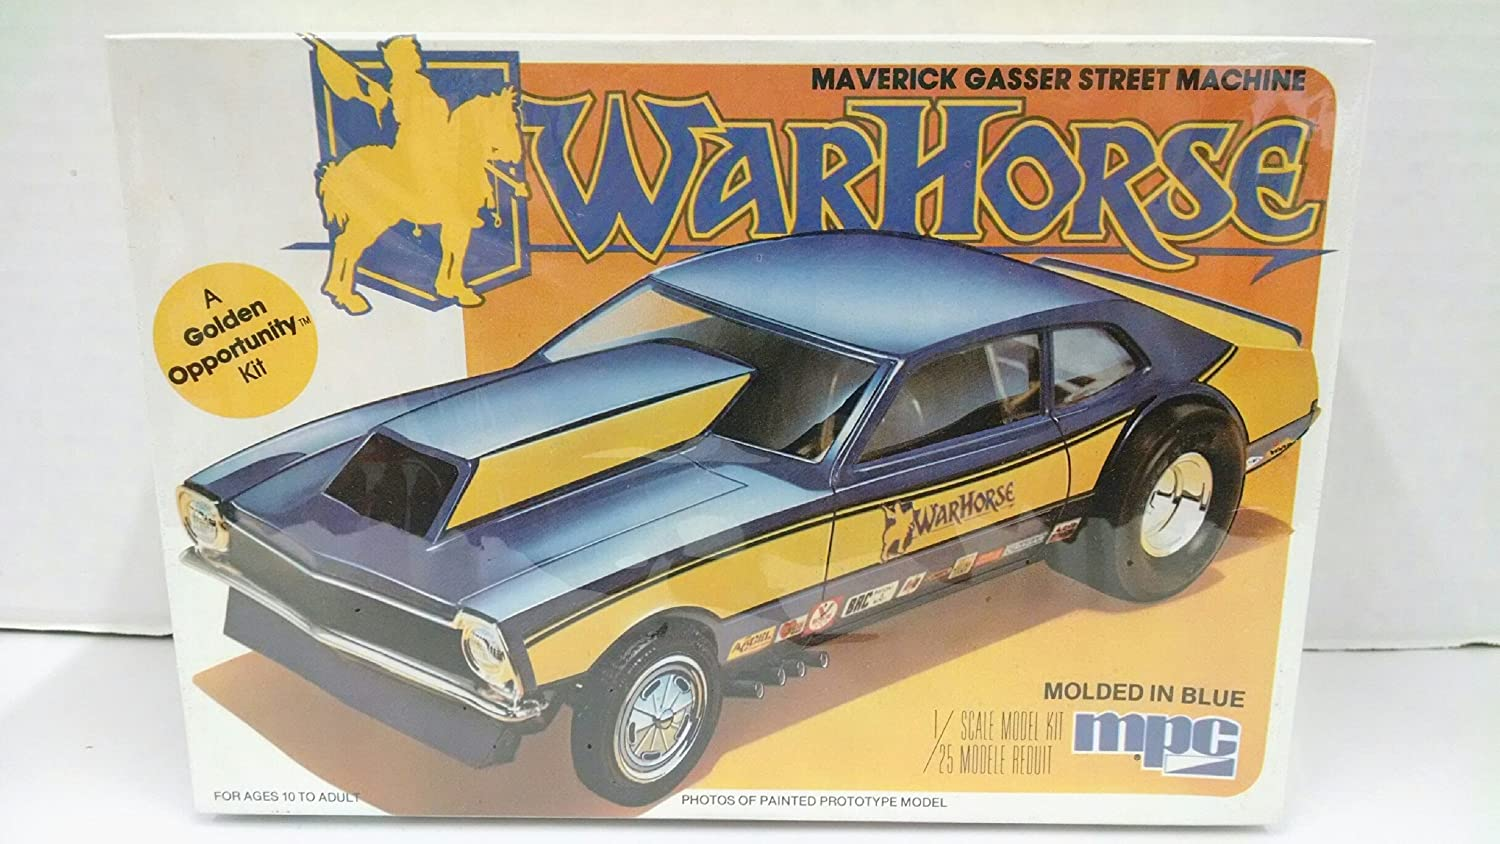 Mpc 1 0831 War Horse 1975 Maverick Gasser Street Machine 1972 Ford Wiring Harness Kits 125 Scale Plastic Model Kit Requires Assembly Toys Games